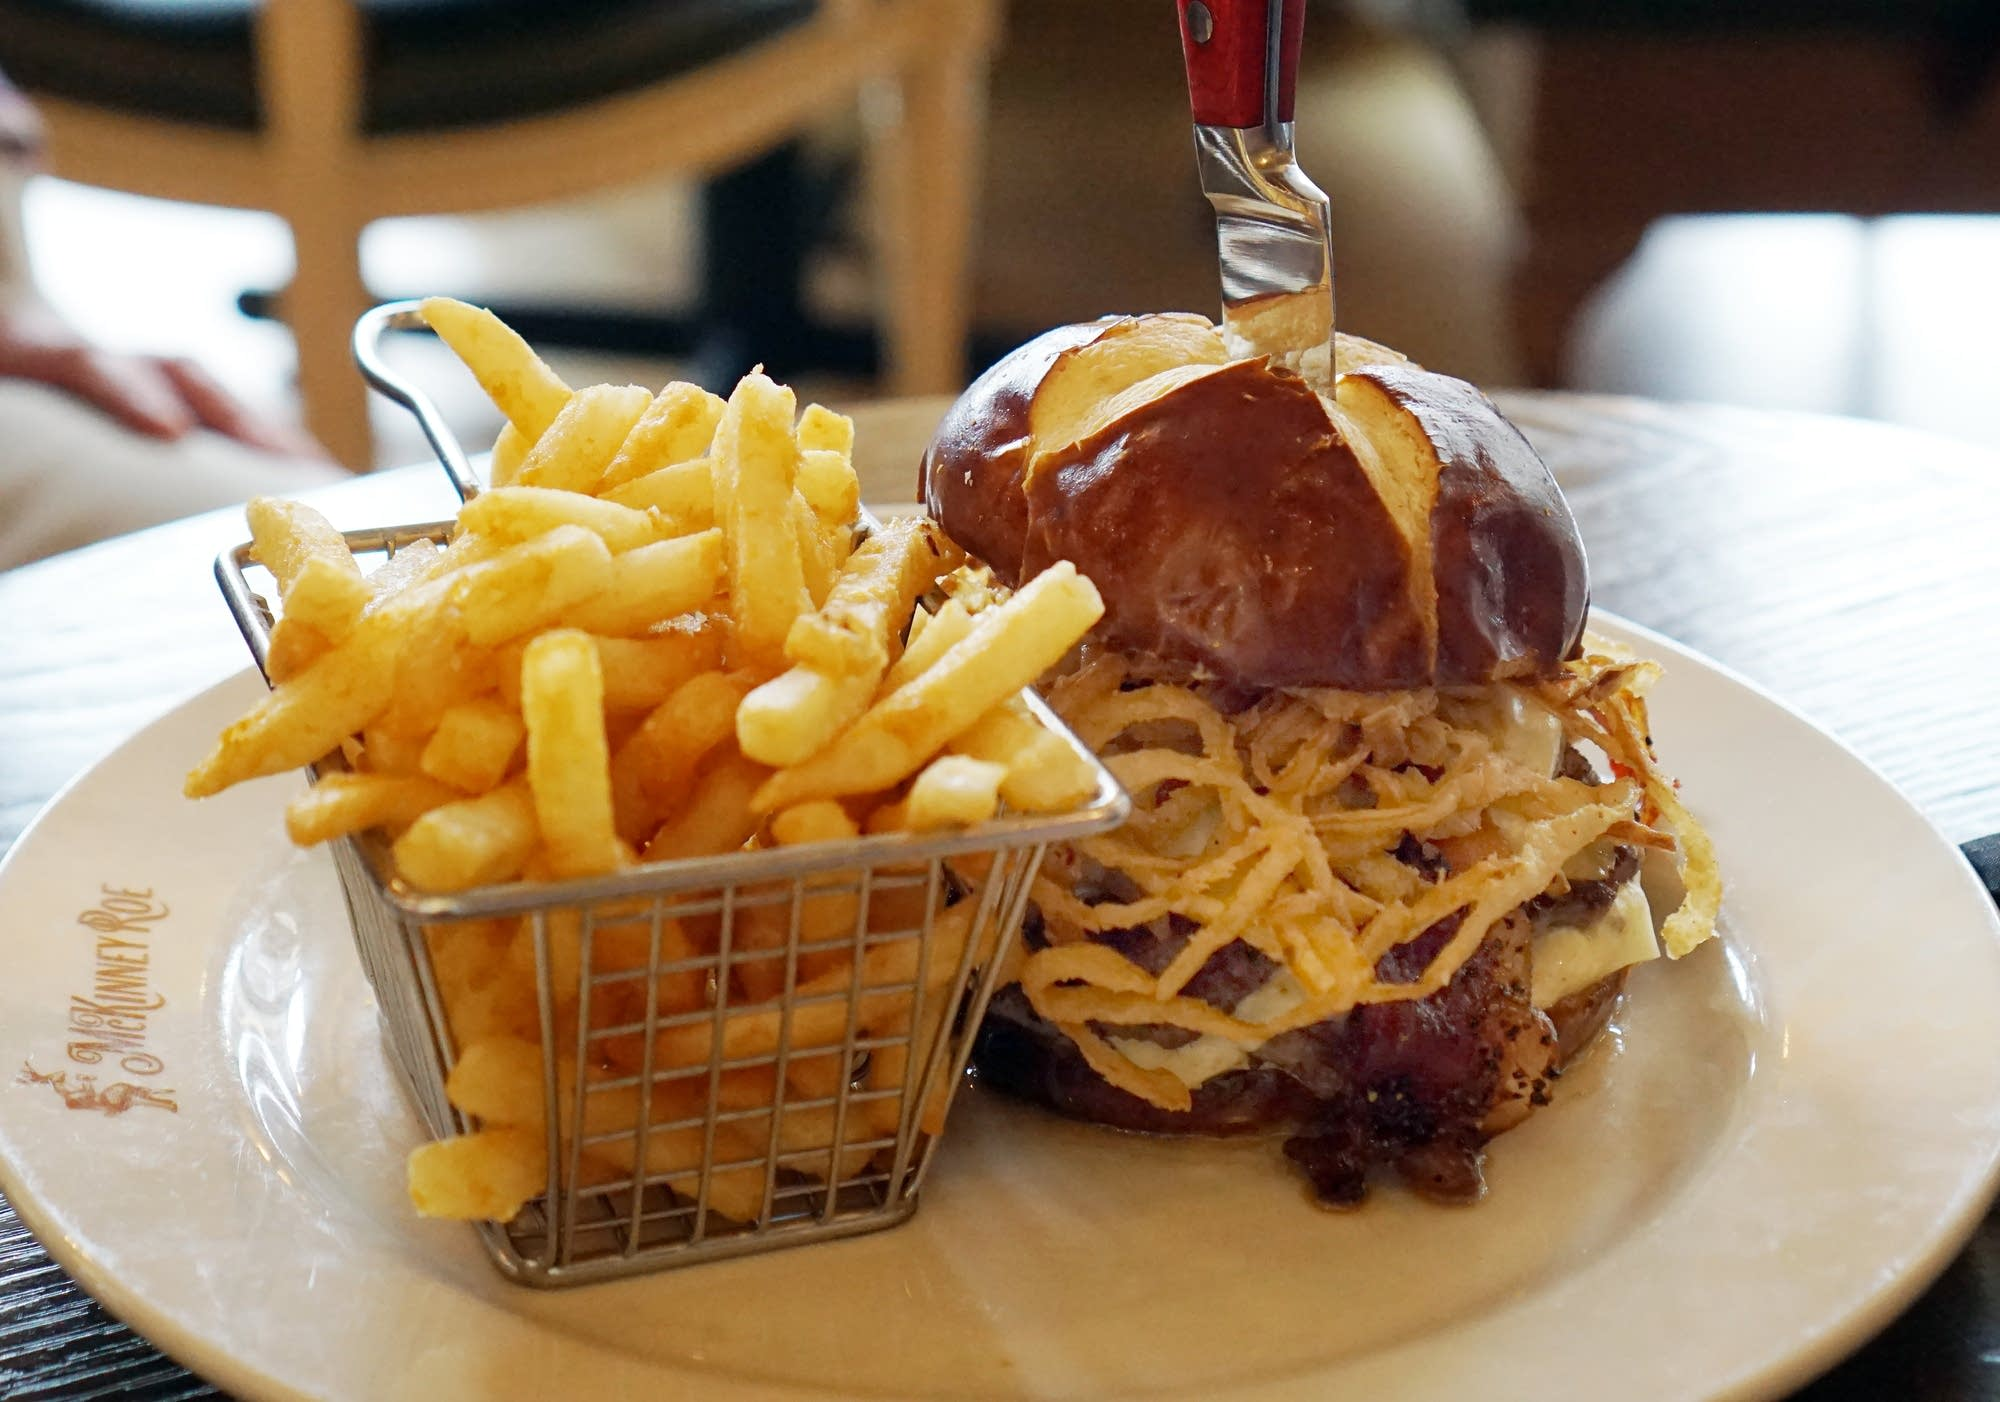 The Big Stag burger from McKinney Roe in downtown Minneapolis.